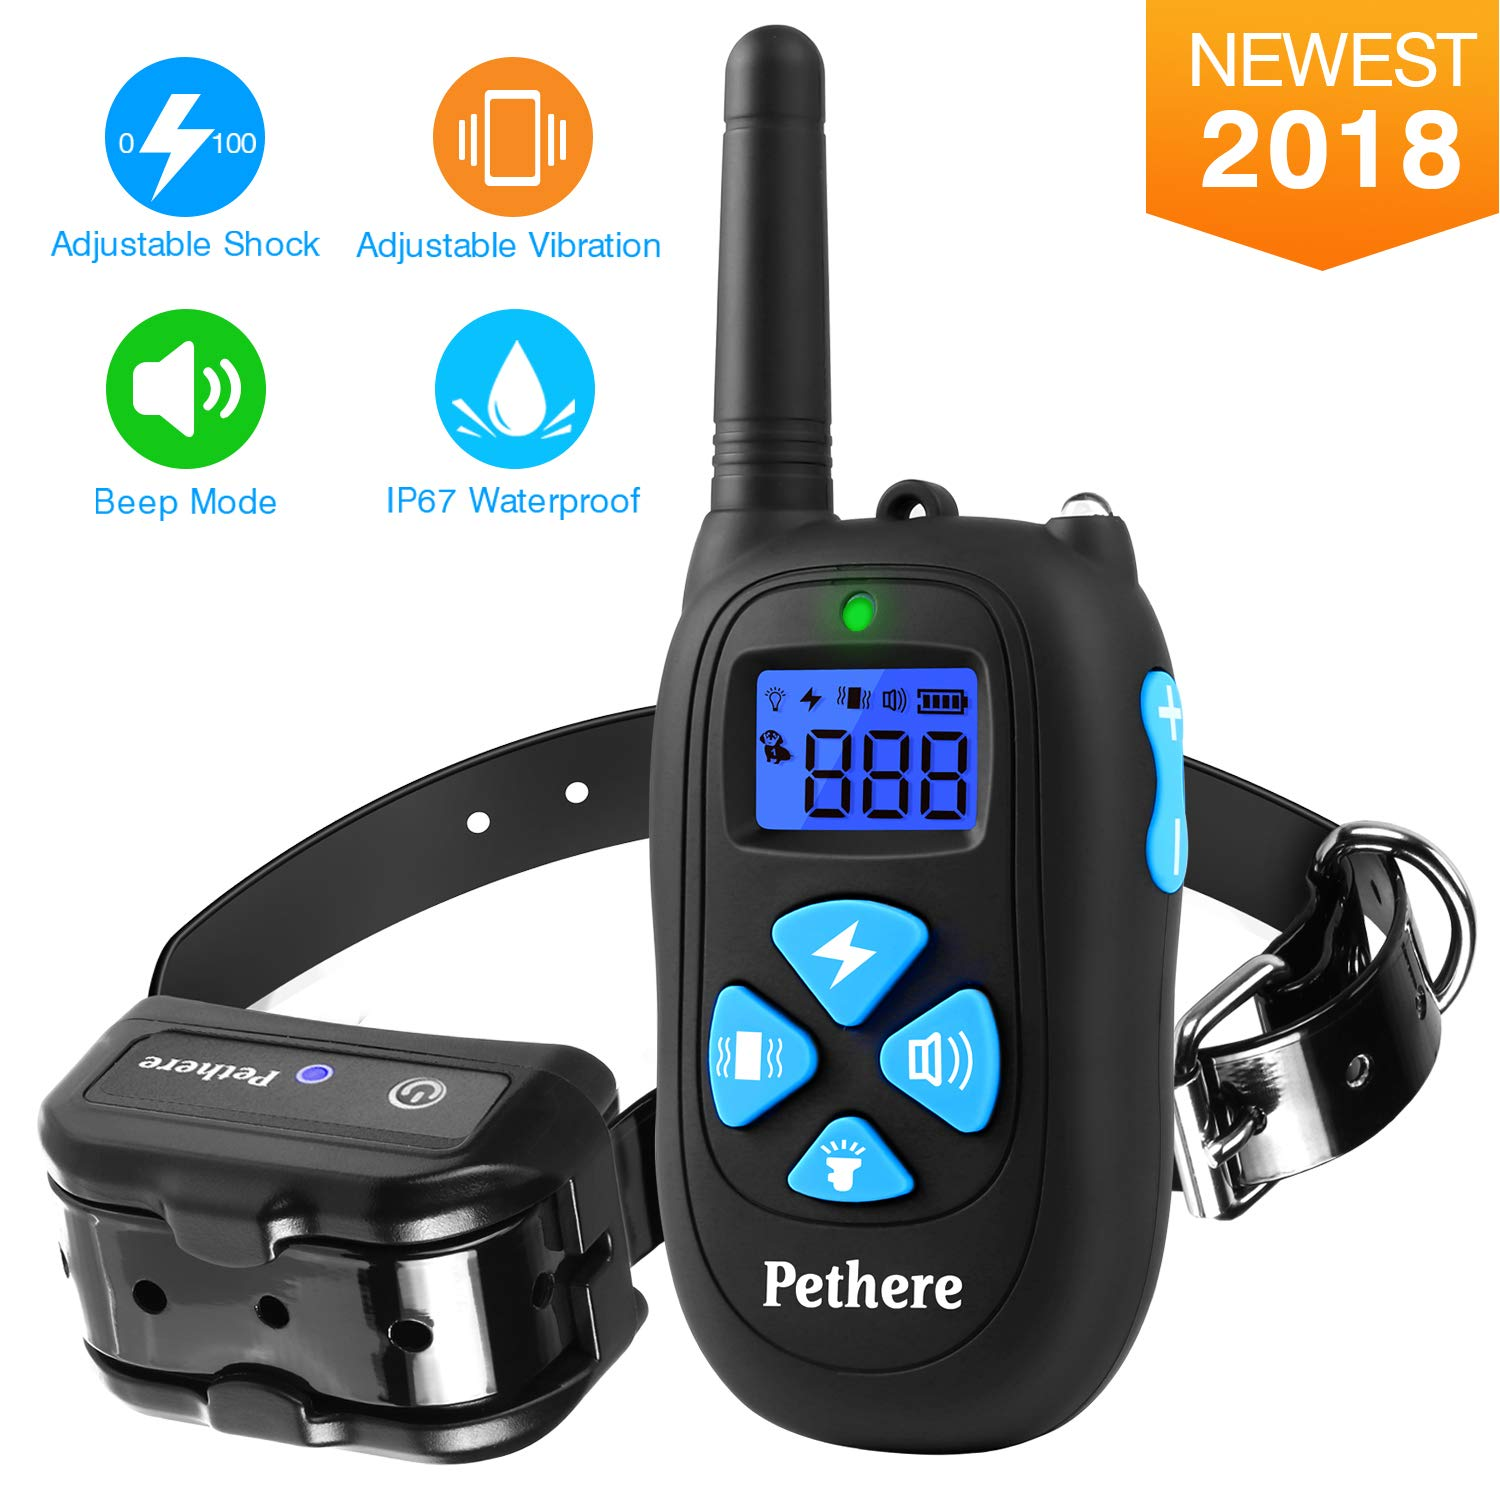 Pethere Dog Training Collar with Remote, IP67 Waterproof Rechargeable Pet Electric Shock Bark Collar with Beep, Vibration, Shock Modes for Small Medium Large Dogs